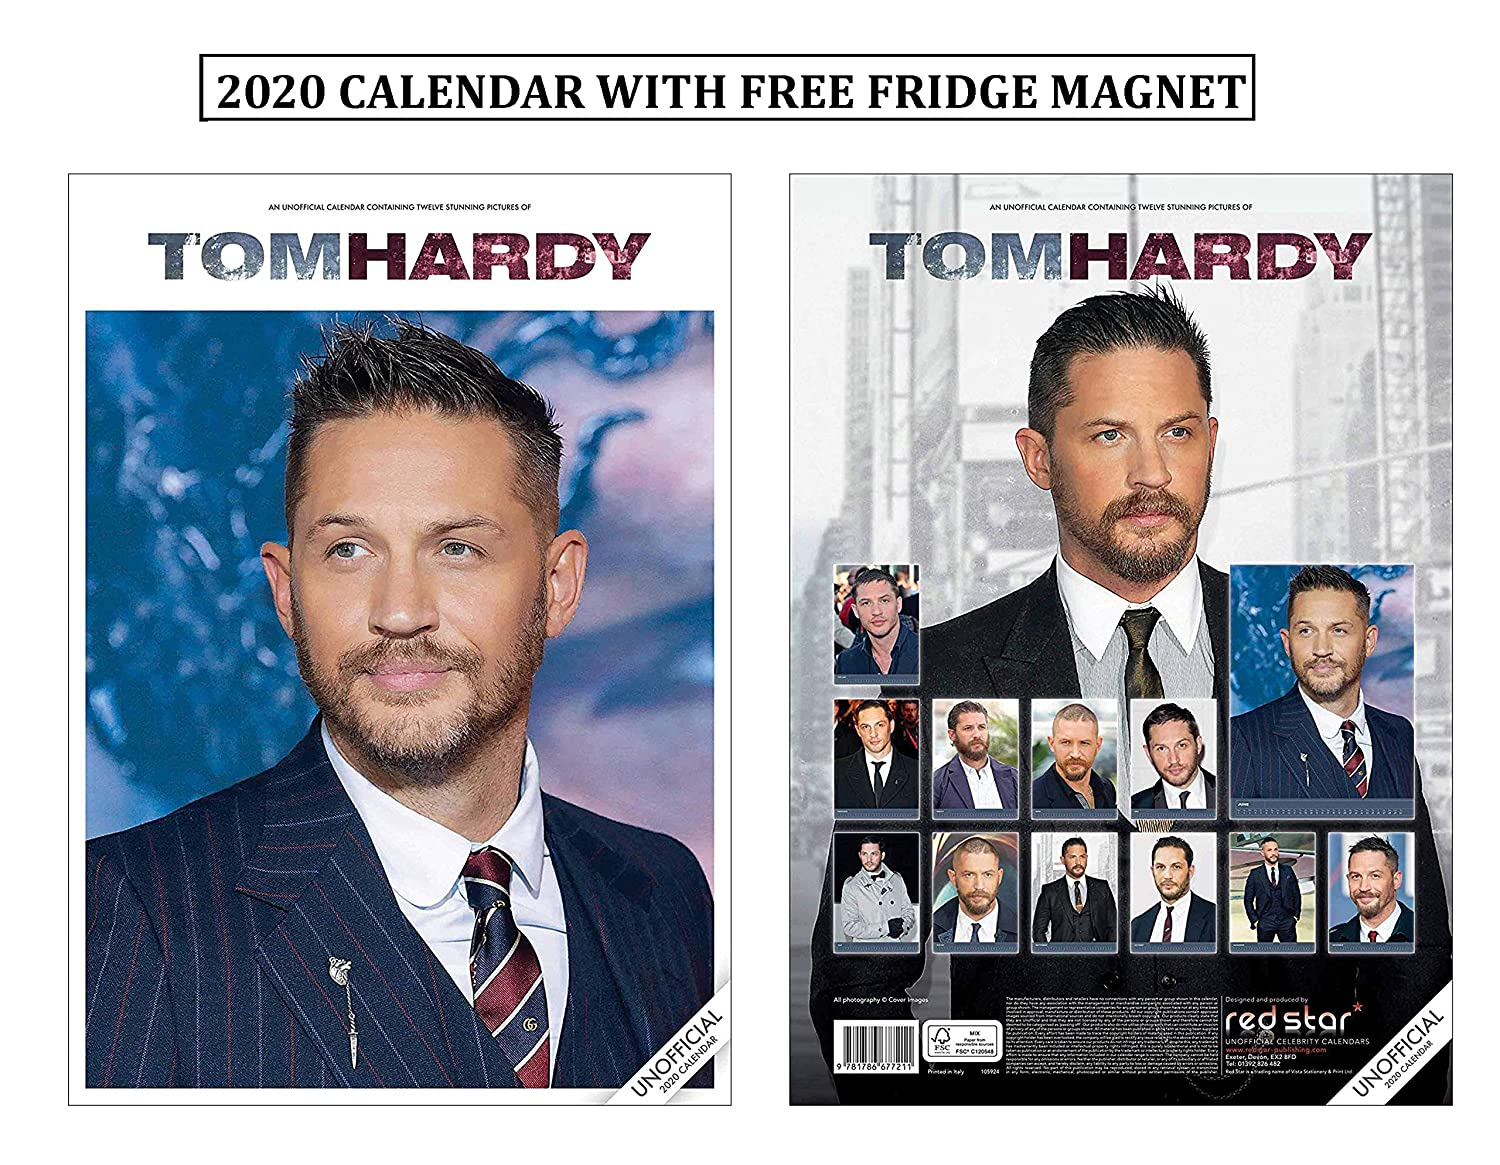 Tom Hardy Calendario 2020 With Tom Hardy Imán para Nevera: Amazon ...